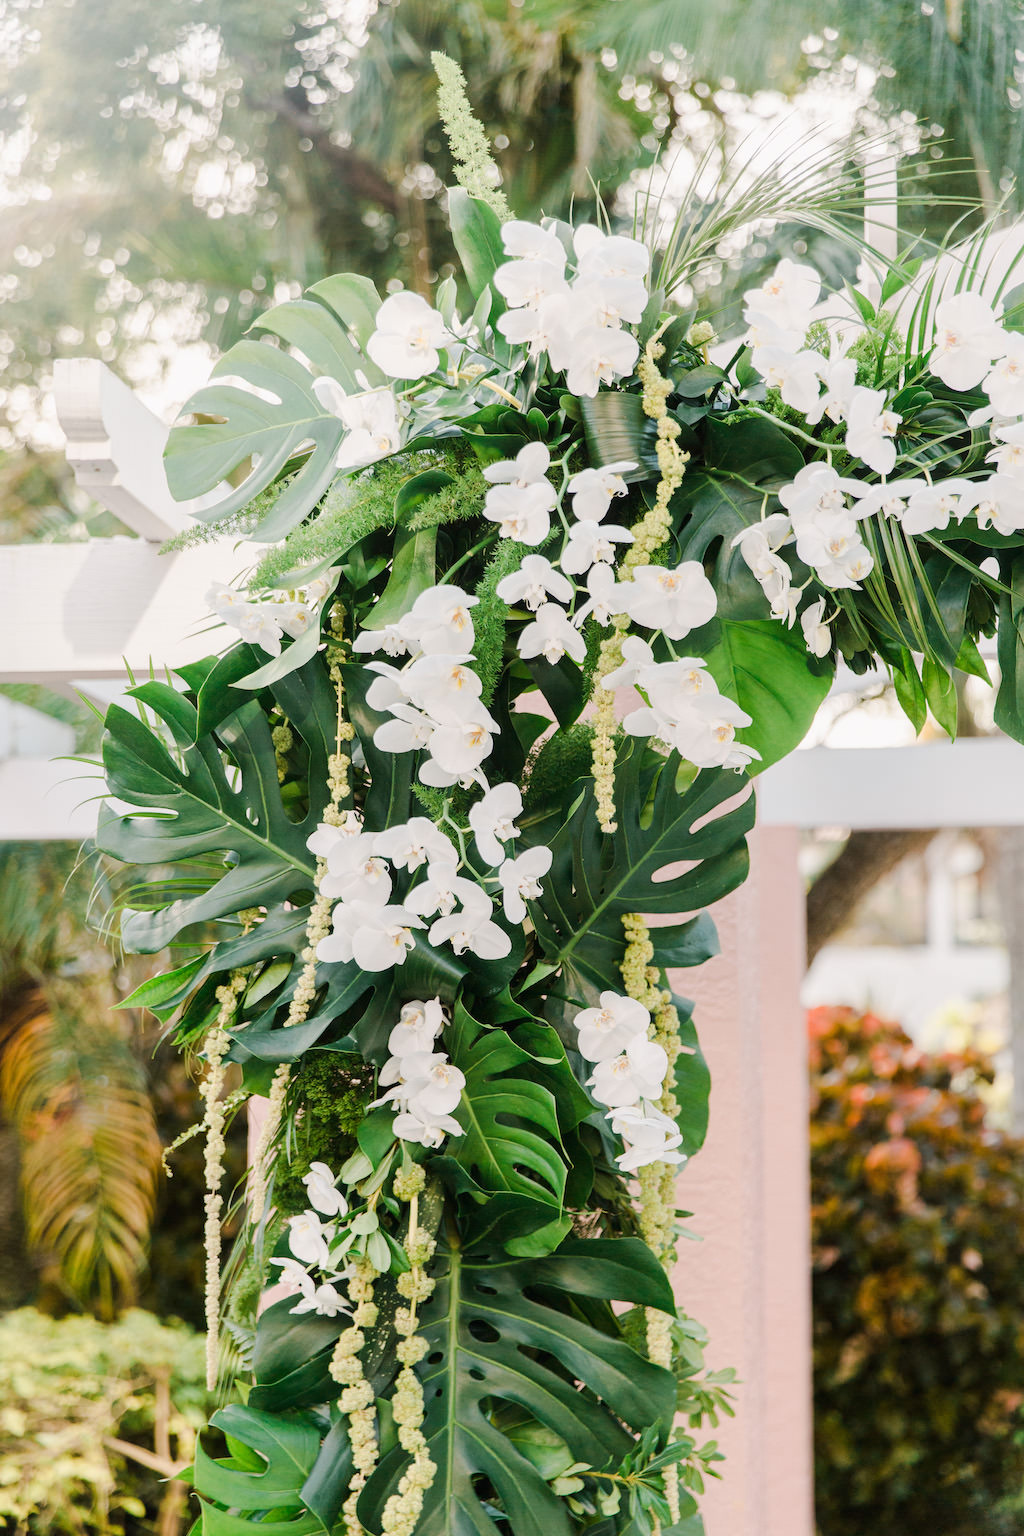 St. Pete Garden Wedding Ceremony, White and Green Florida Inspired Tropical Decor, Floral Orchids, Monstera Leaves and Hanging Green Amaranthus | Tampa Bay Florist Bruce Wayne Florals | Luxury Wedding Planner Parties A'La Carte